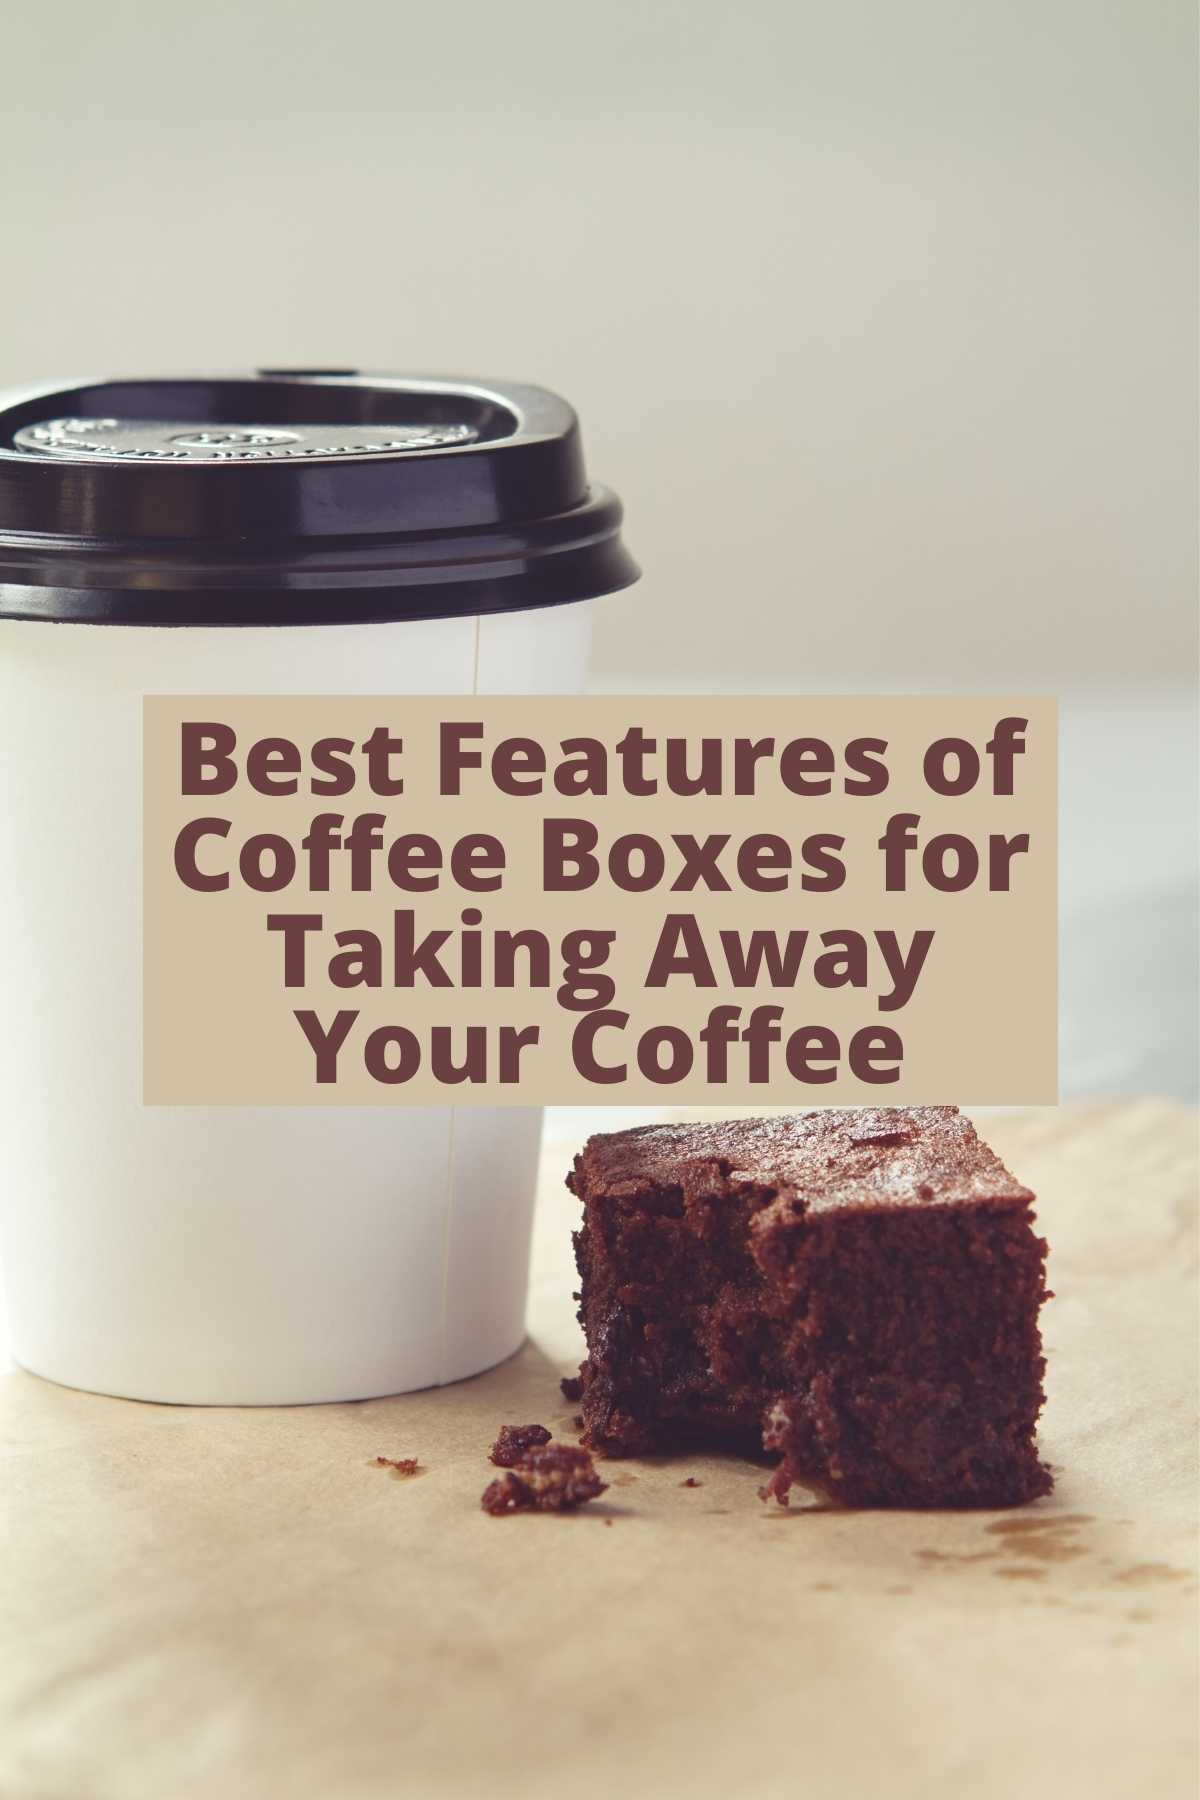 Best Features of Coffee Boxes for Taking Away Your Coffee